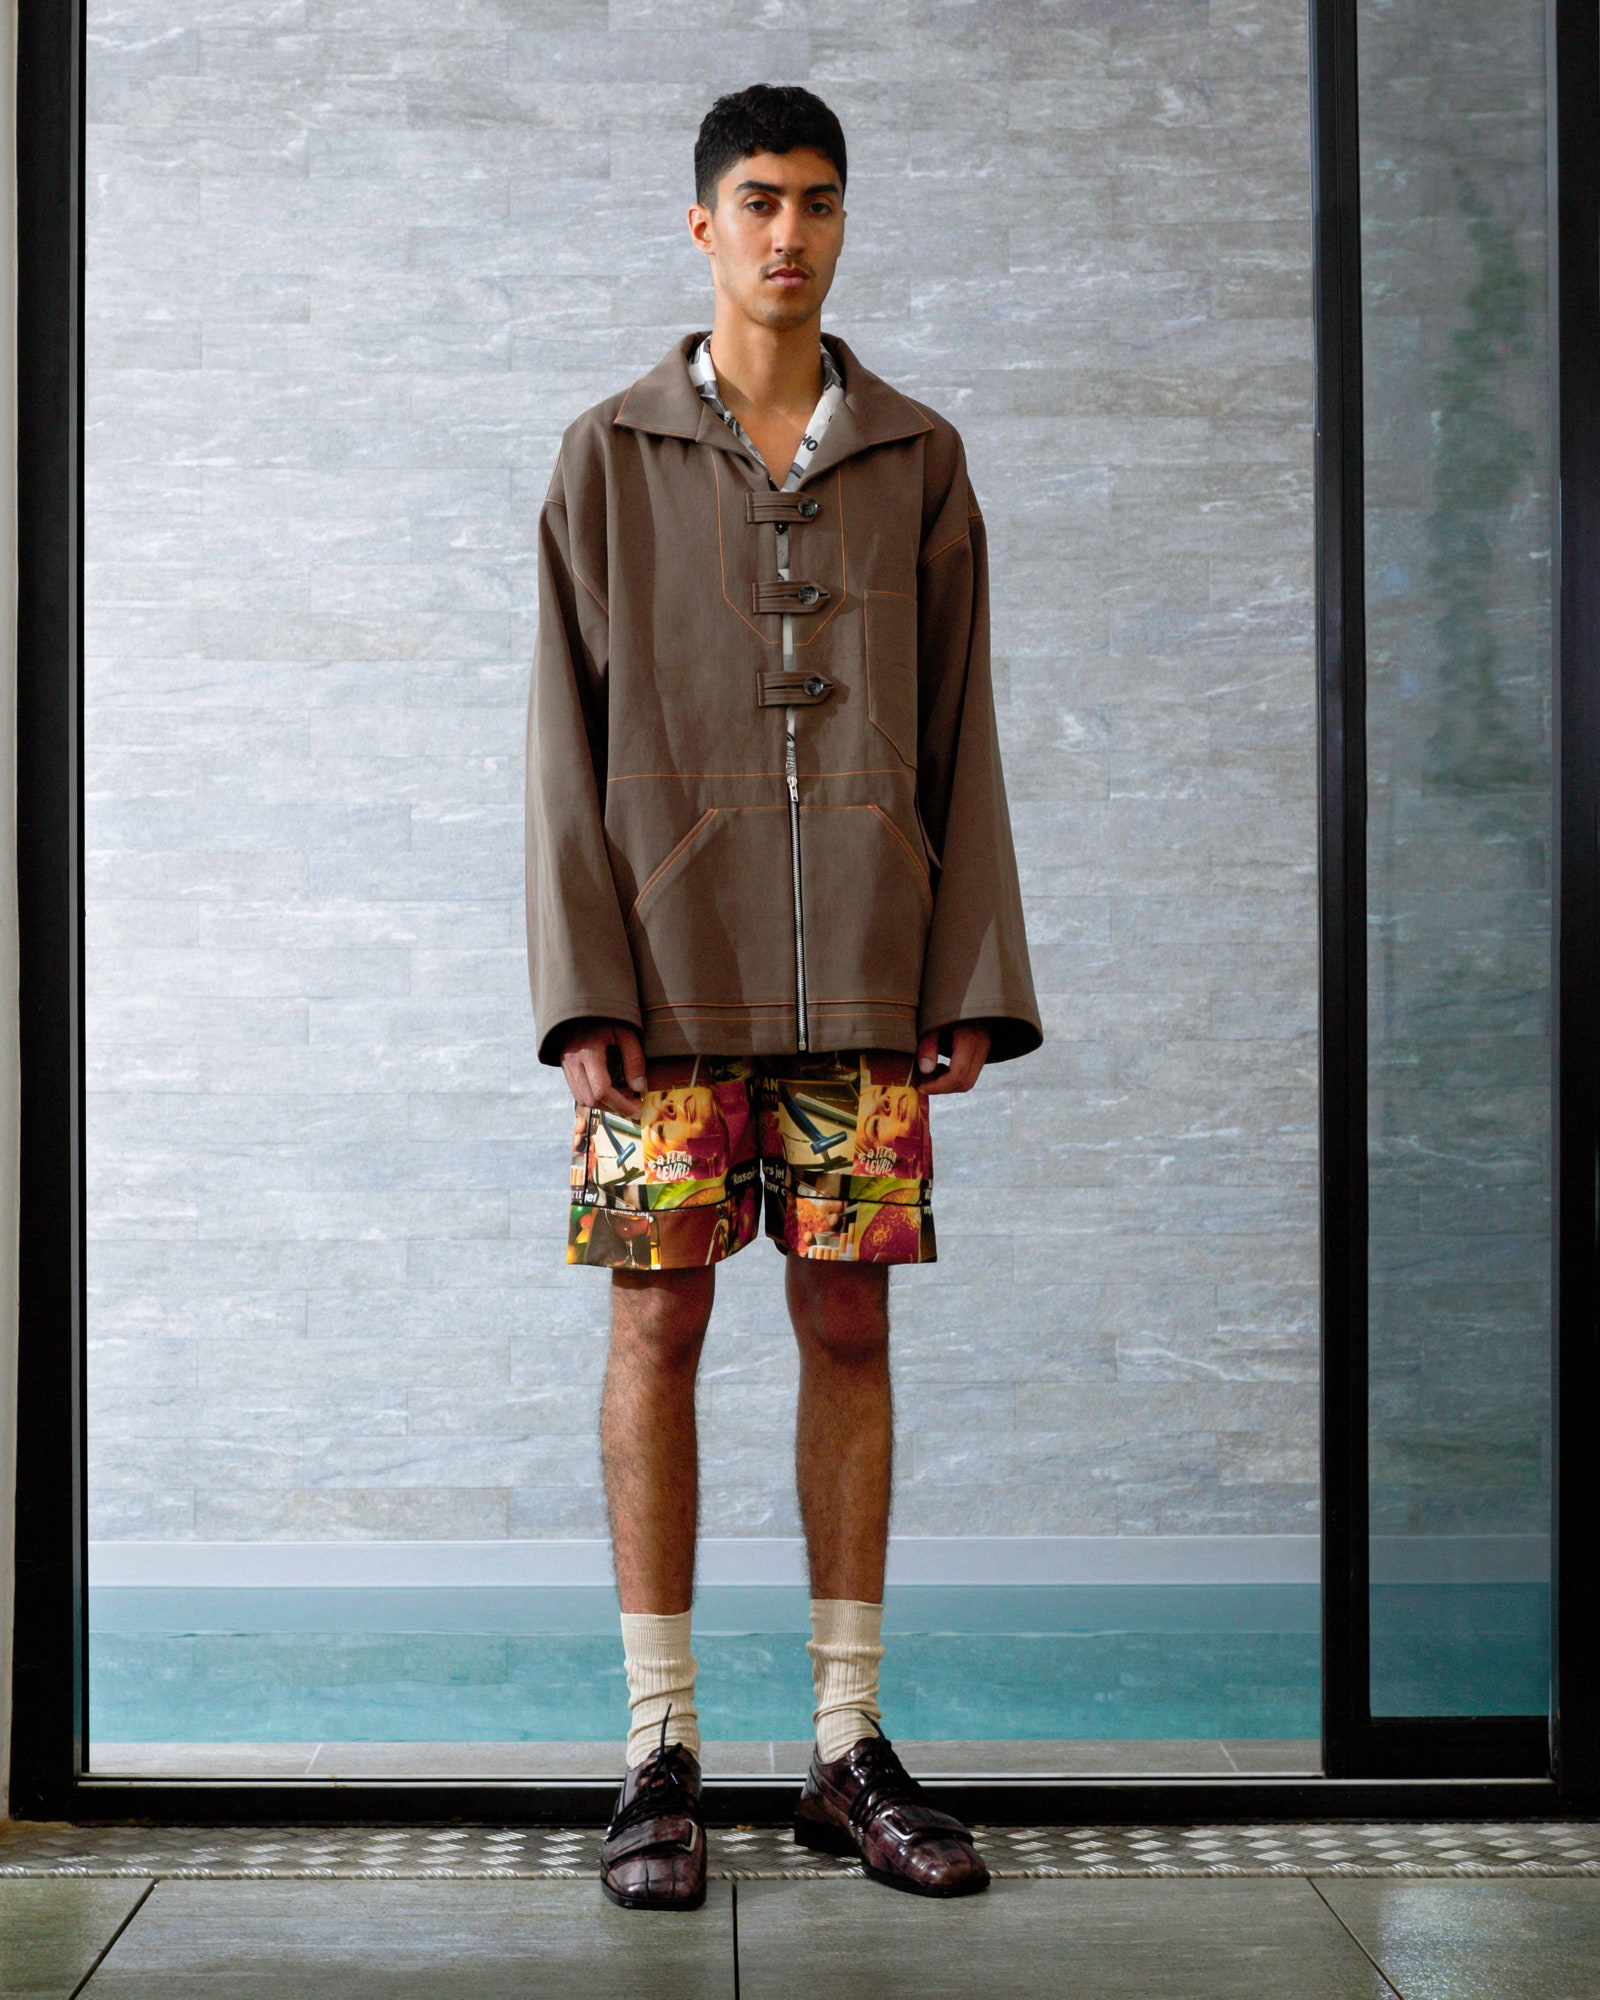 6 Emerging Designers to Know From Mens Fashion Week